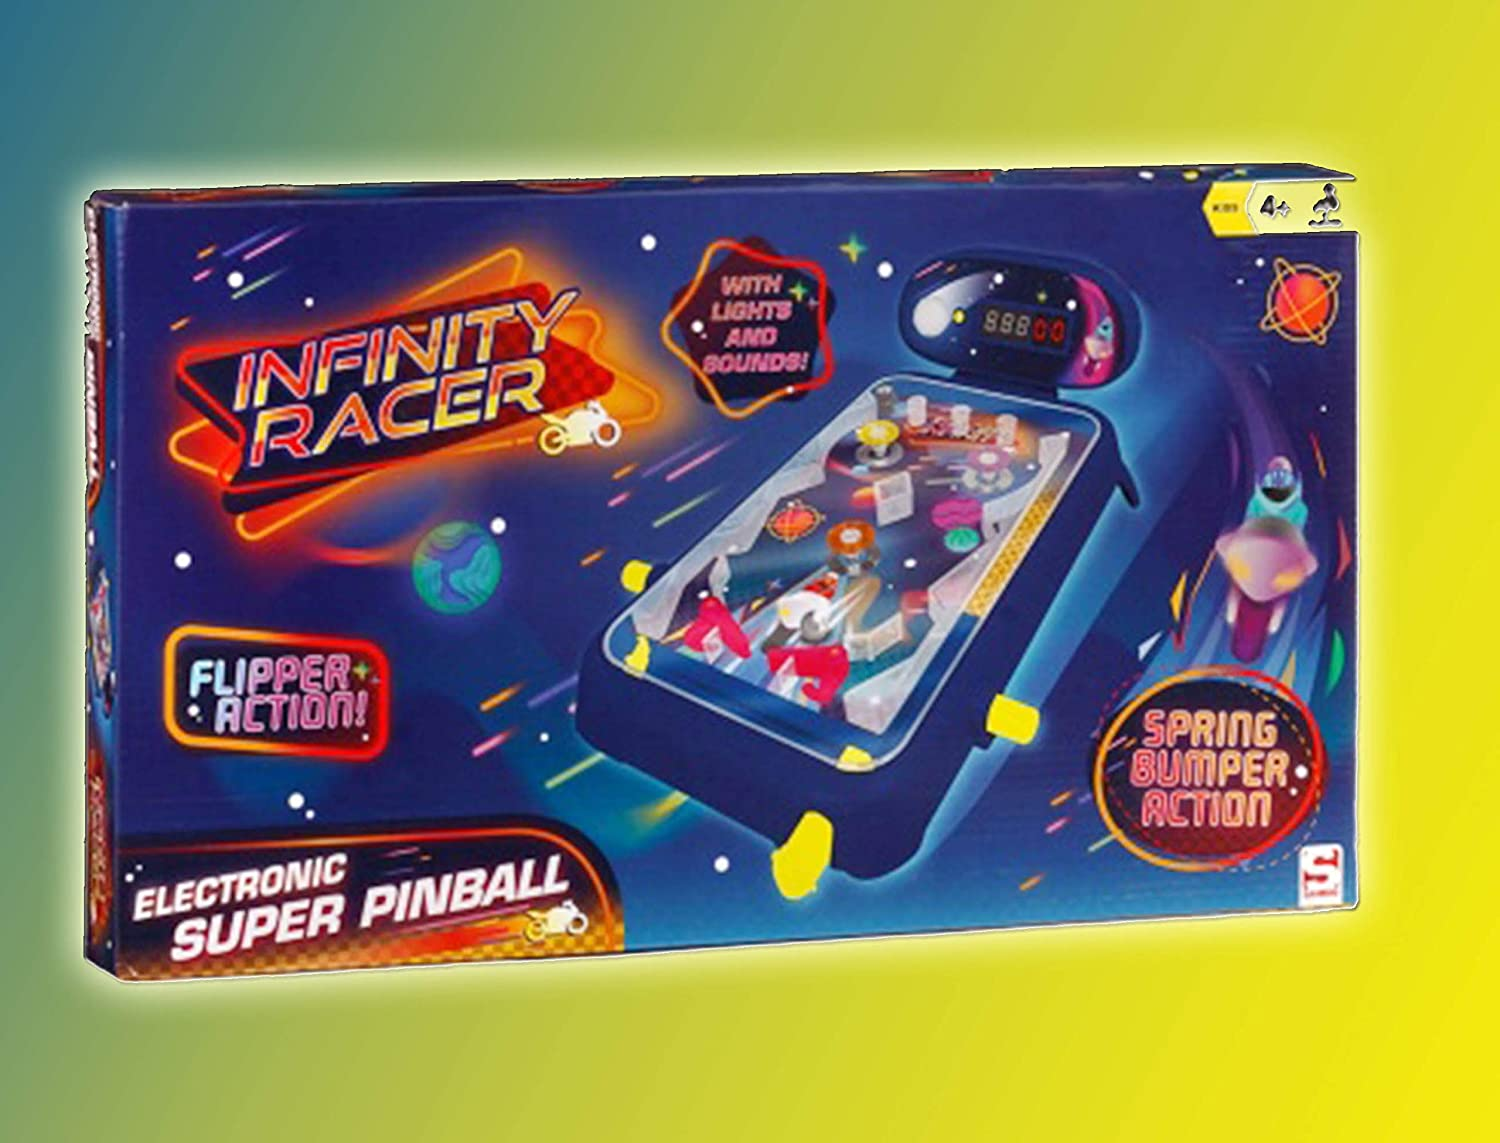 New Brilliant Electronic Children's Super Table Pinball Game Machine with Sounds Scotrade